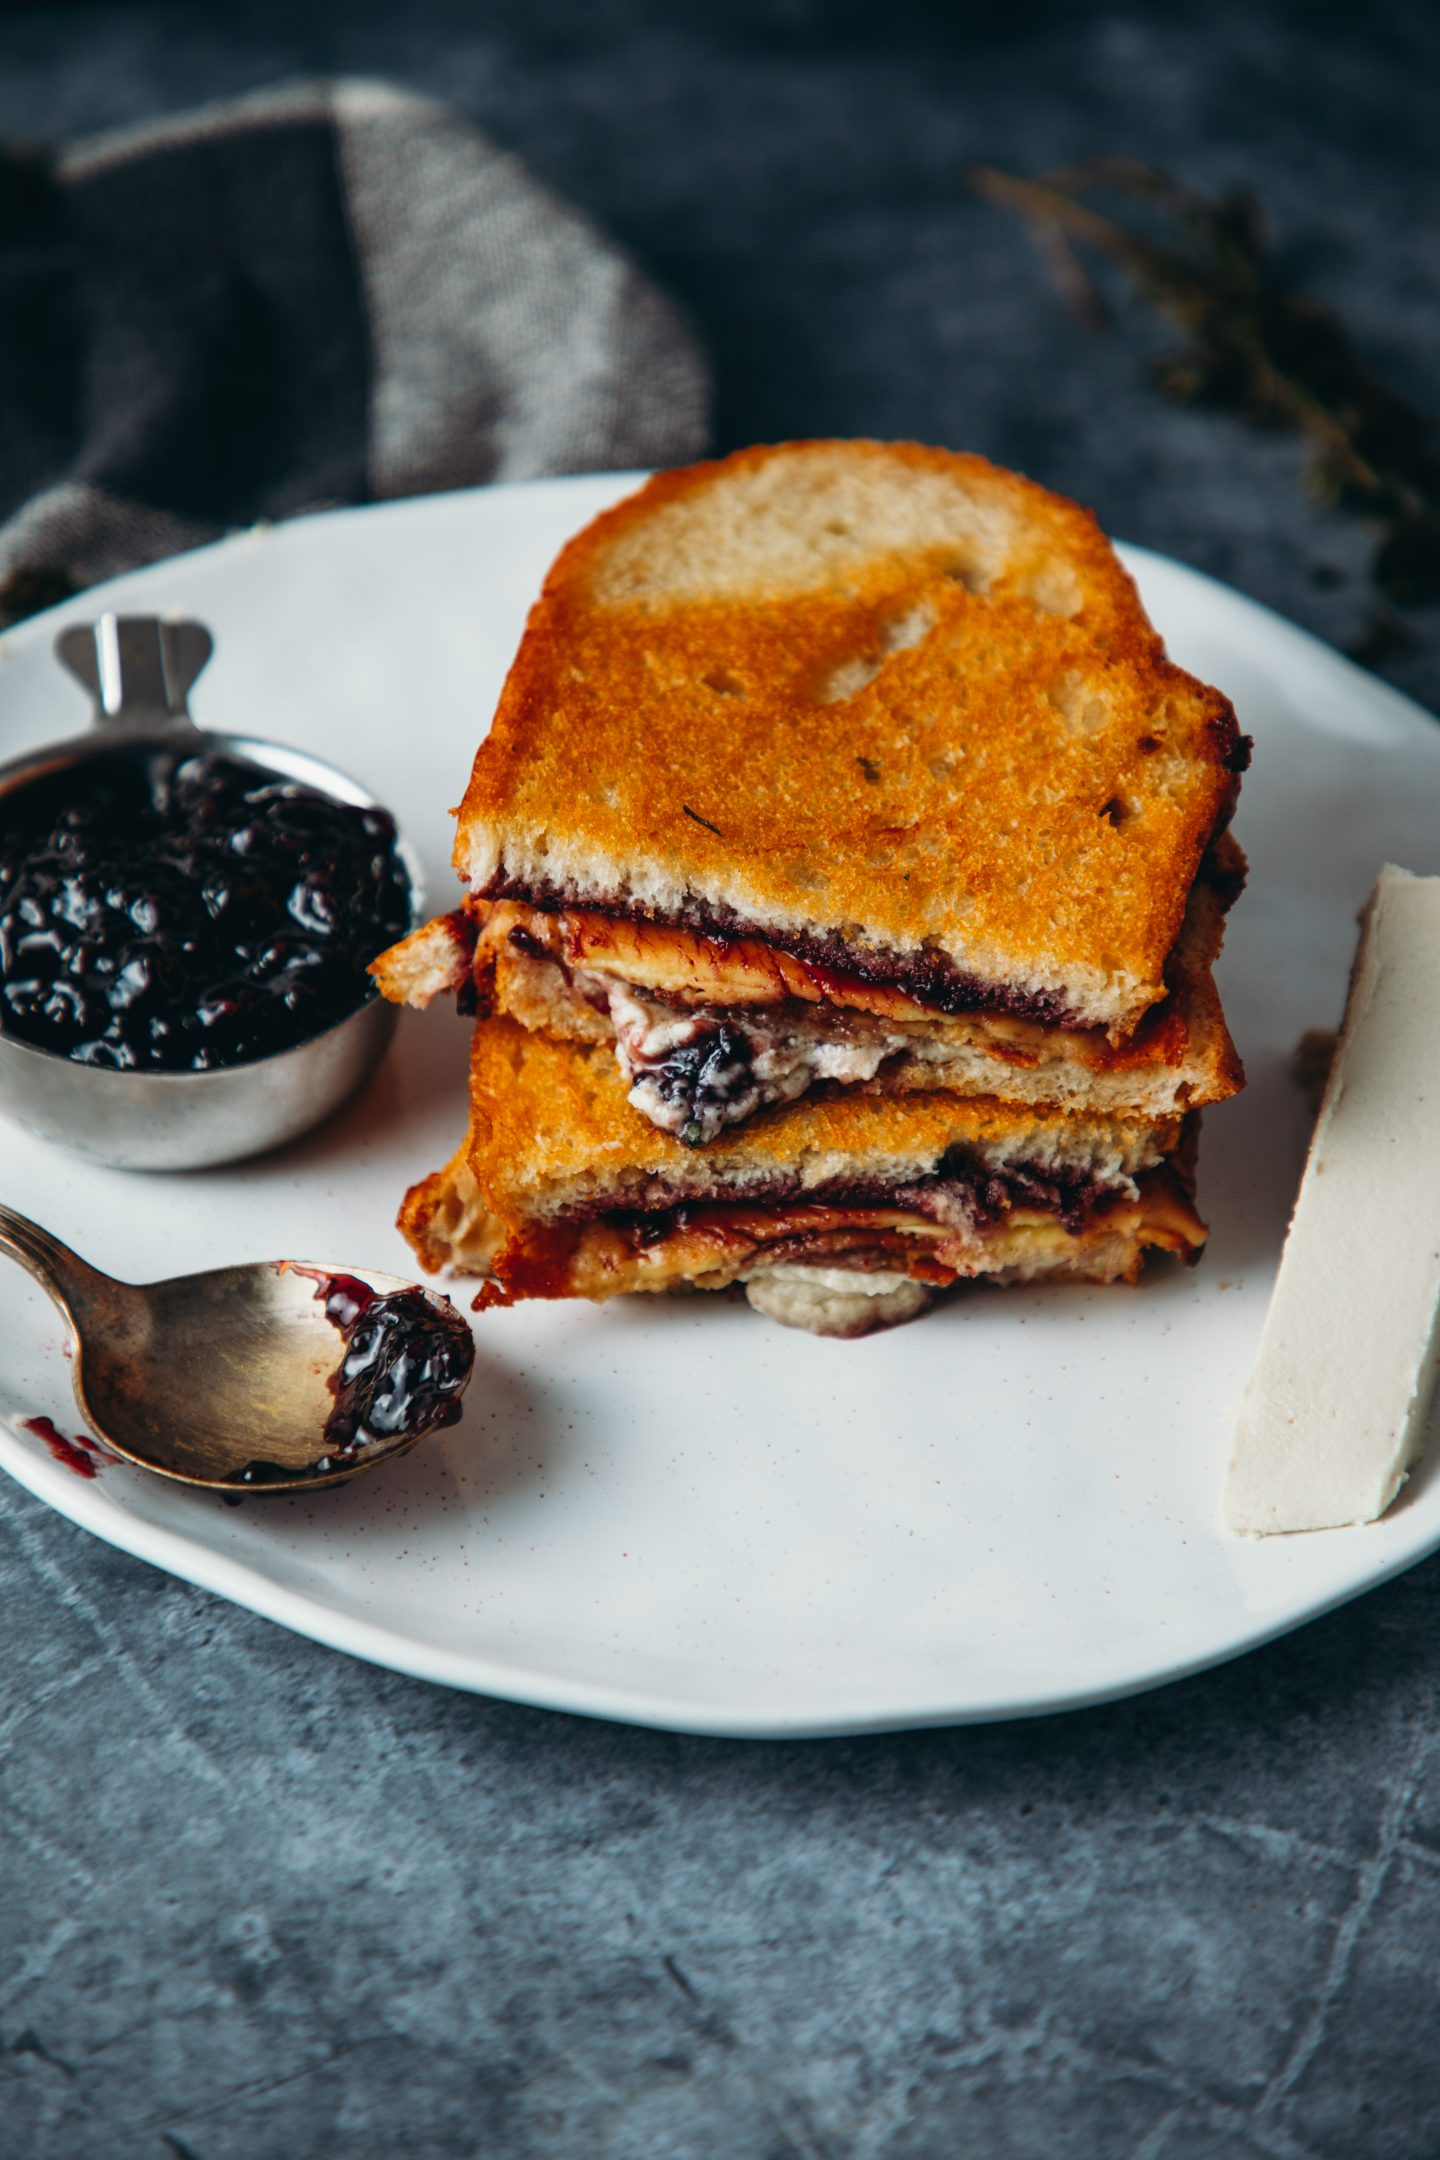 Blackberry Brie & Bacon Grilled Cheese